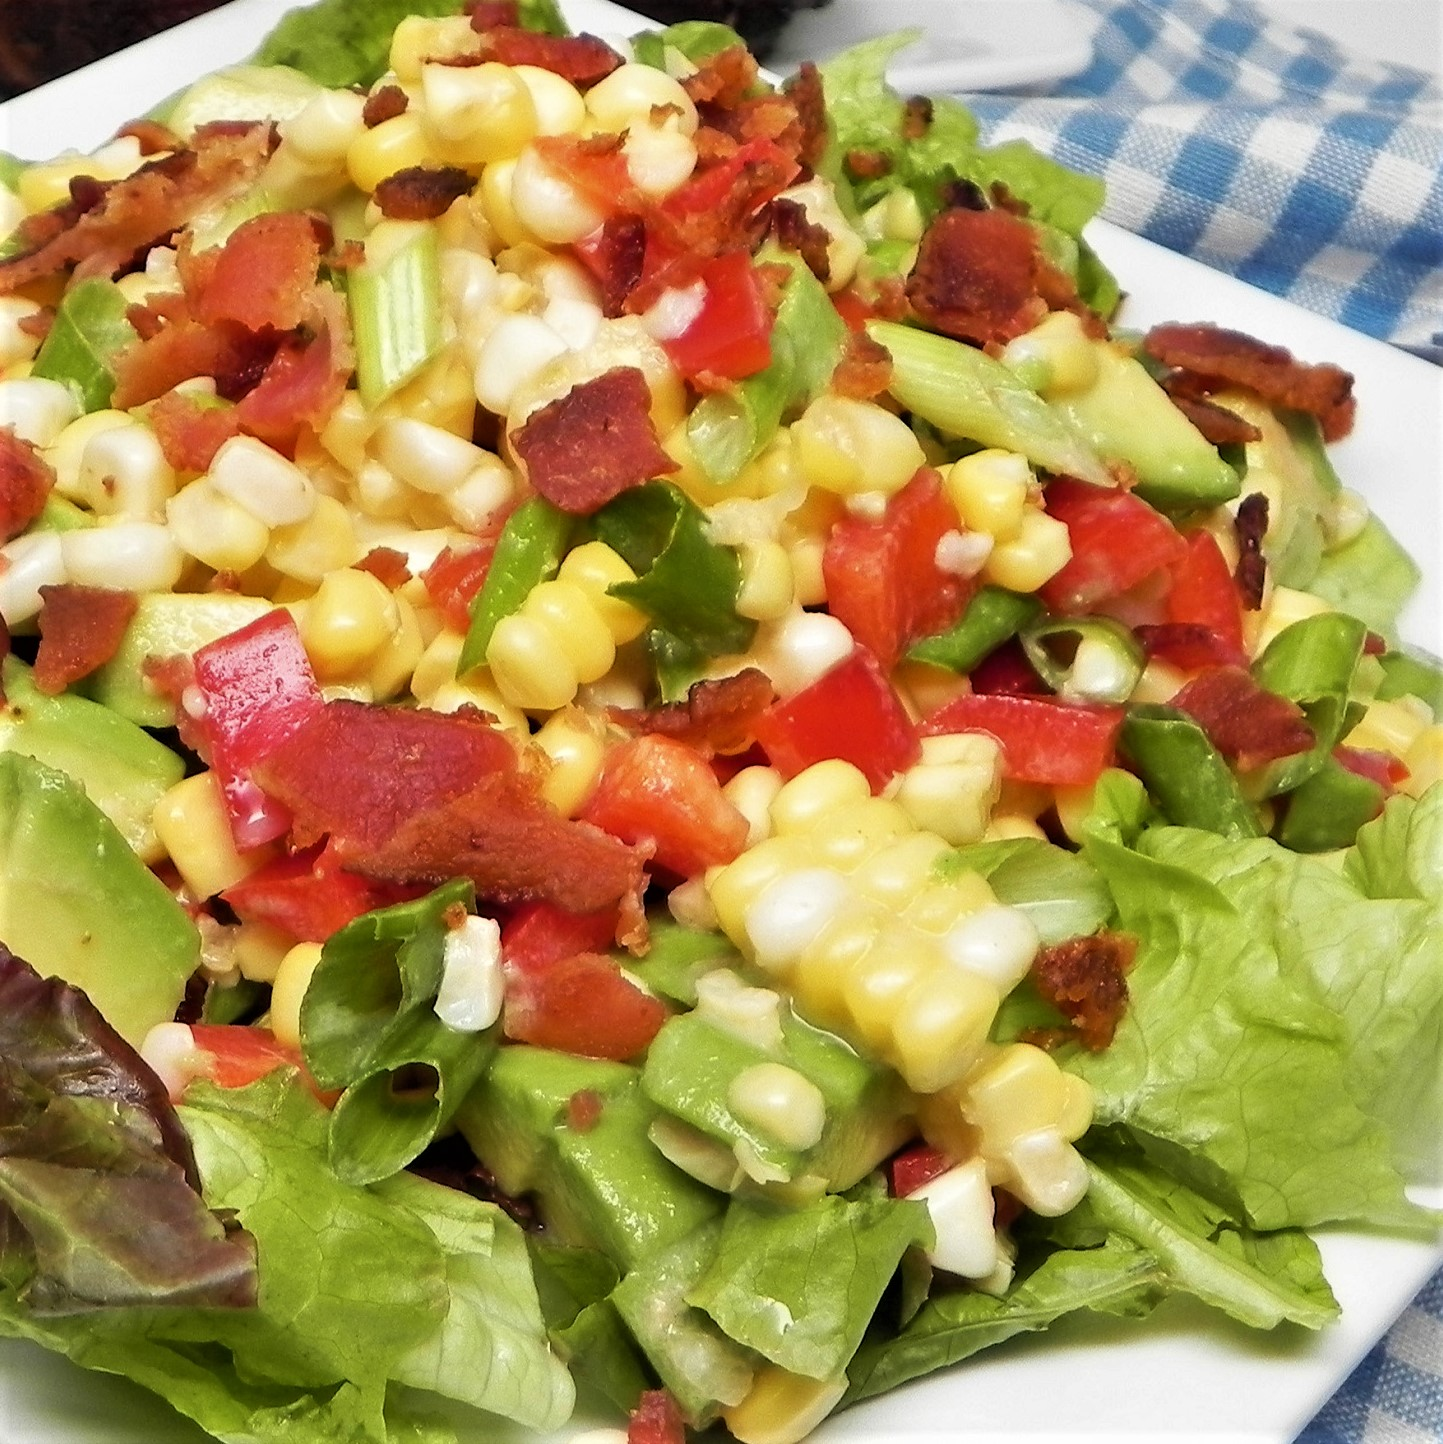 corn and avocado salad on white plate